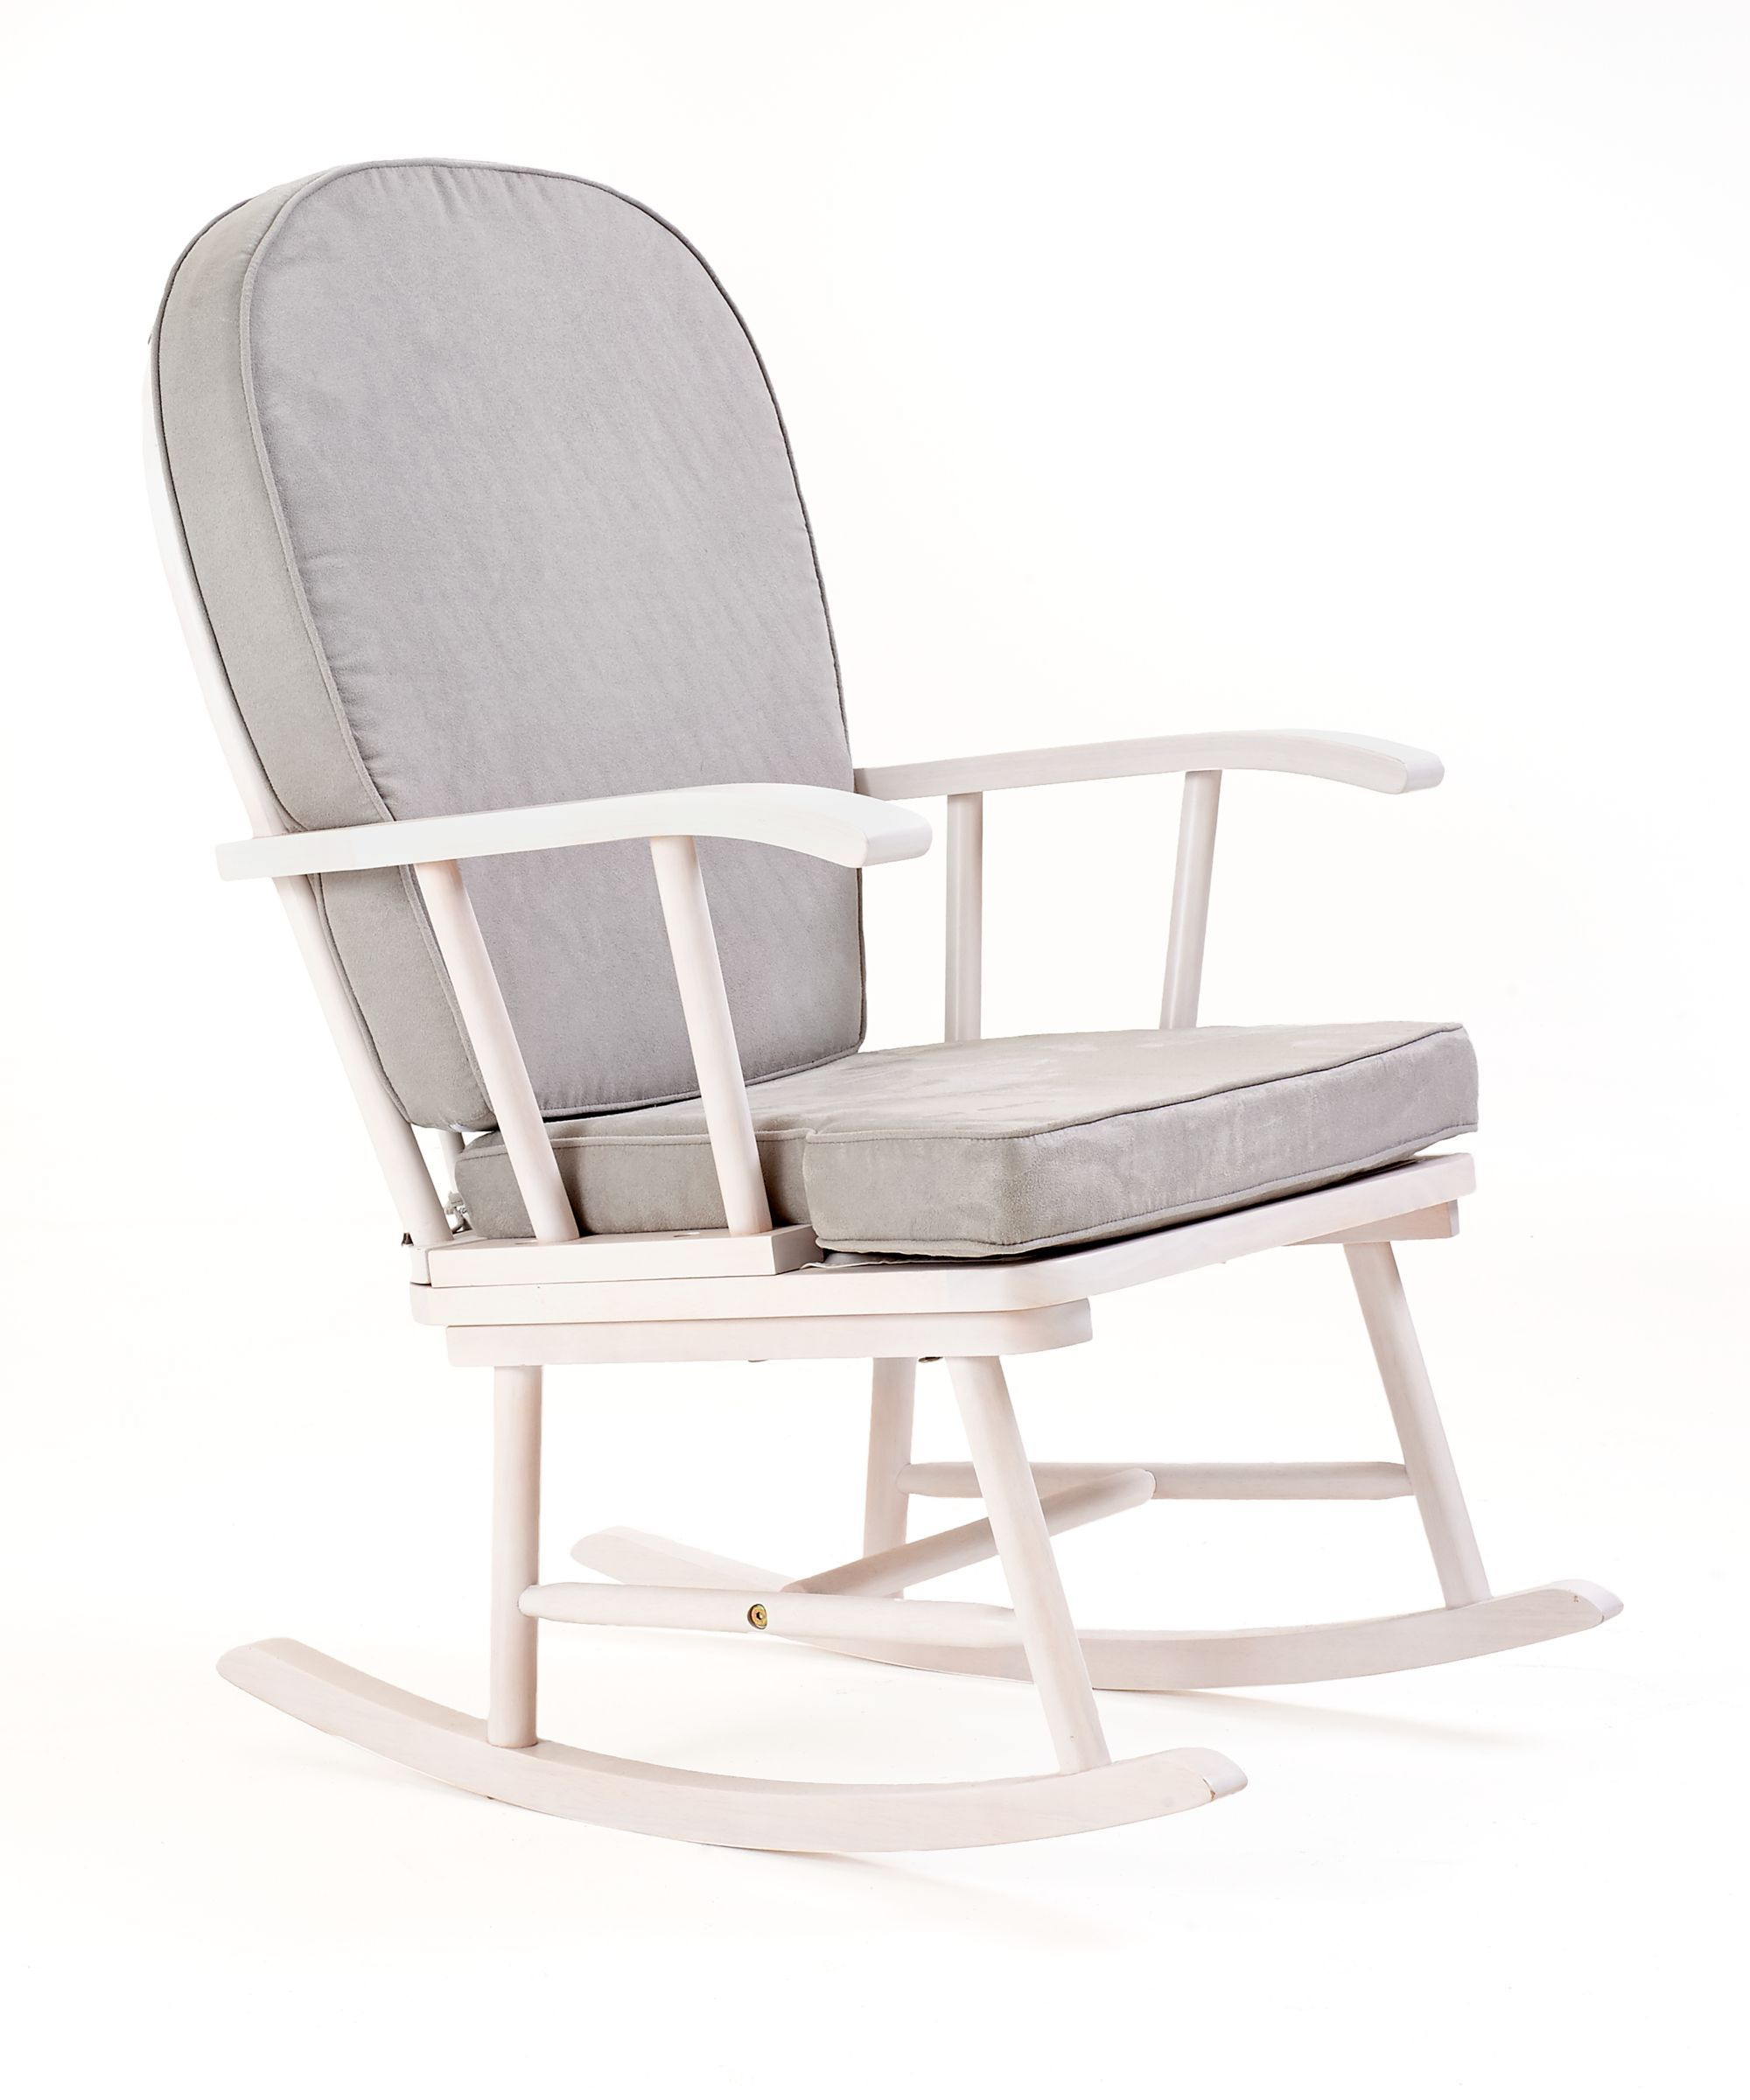 Muebles Para Guarderia Mothercare Rocking Chair With Grey Cushion White